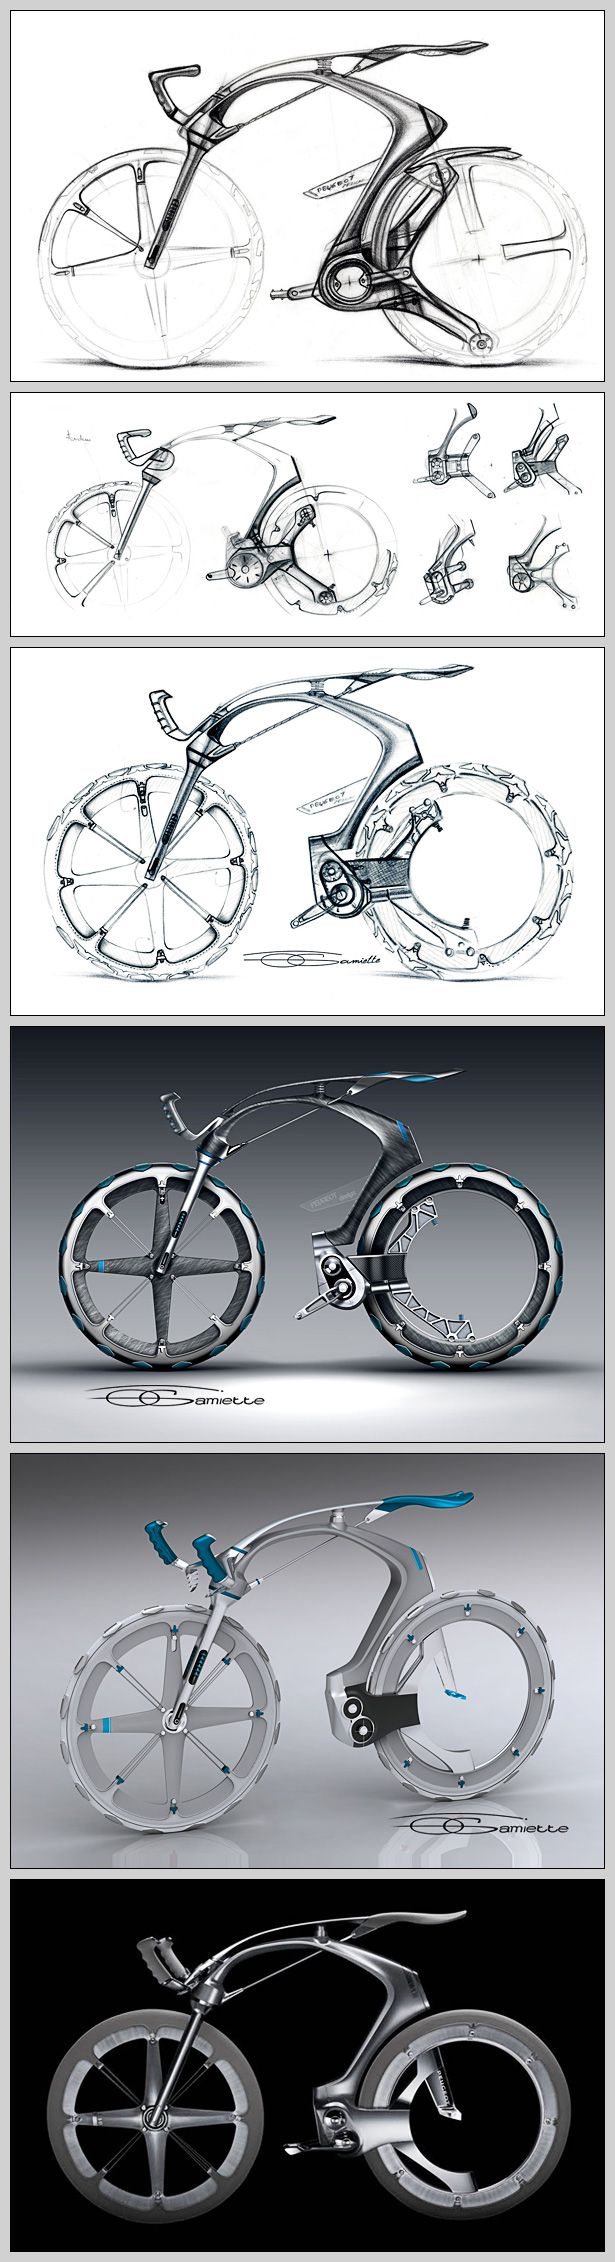 Revista Leaf » Bike Design: As bikes conceito | プロダクトスケッチ ...